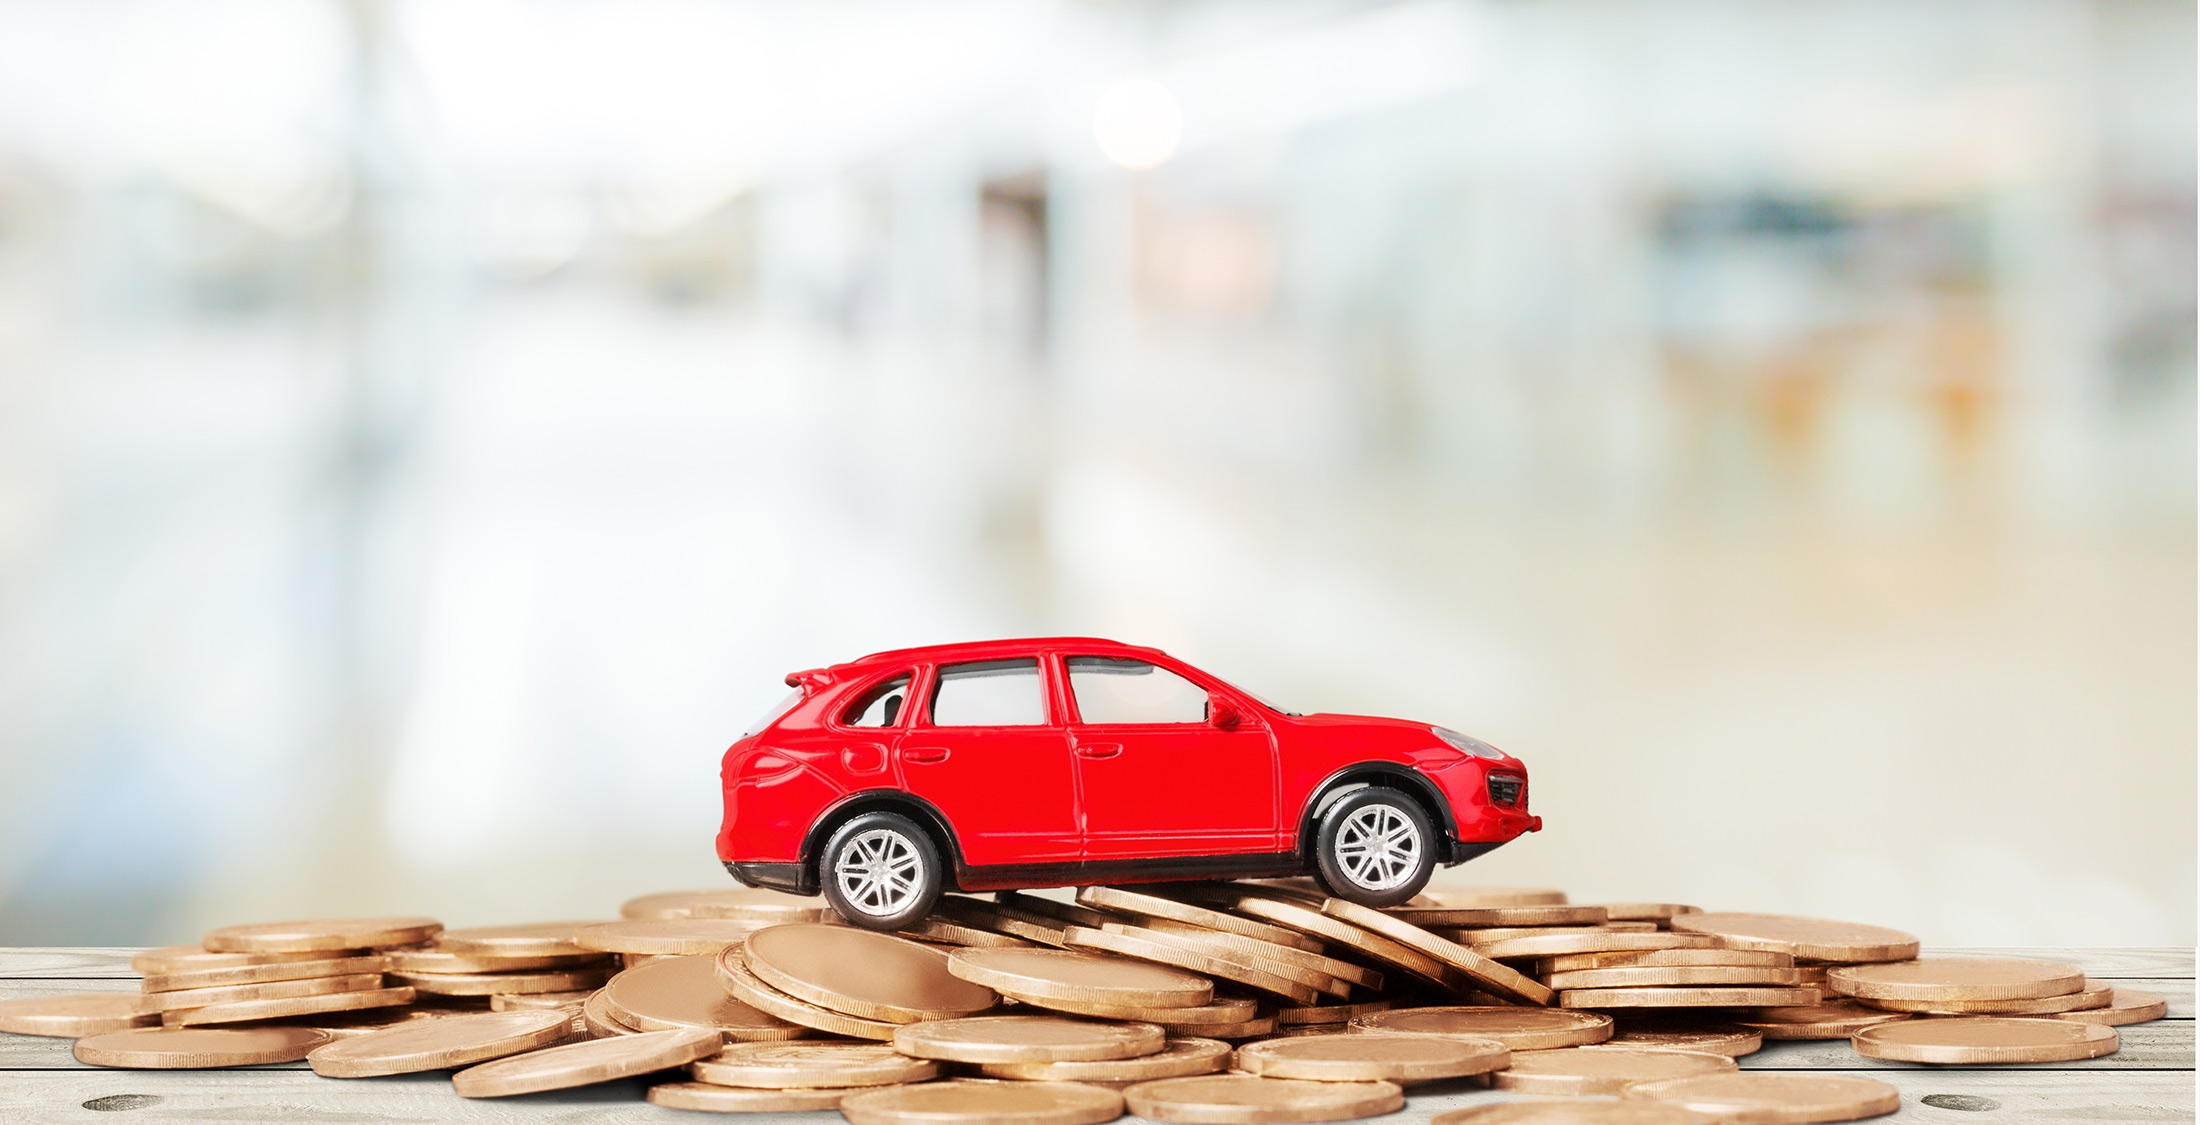 what percentage of your in e should go toward auto loan payments